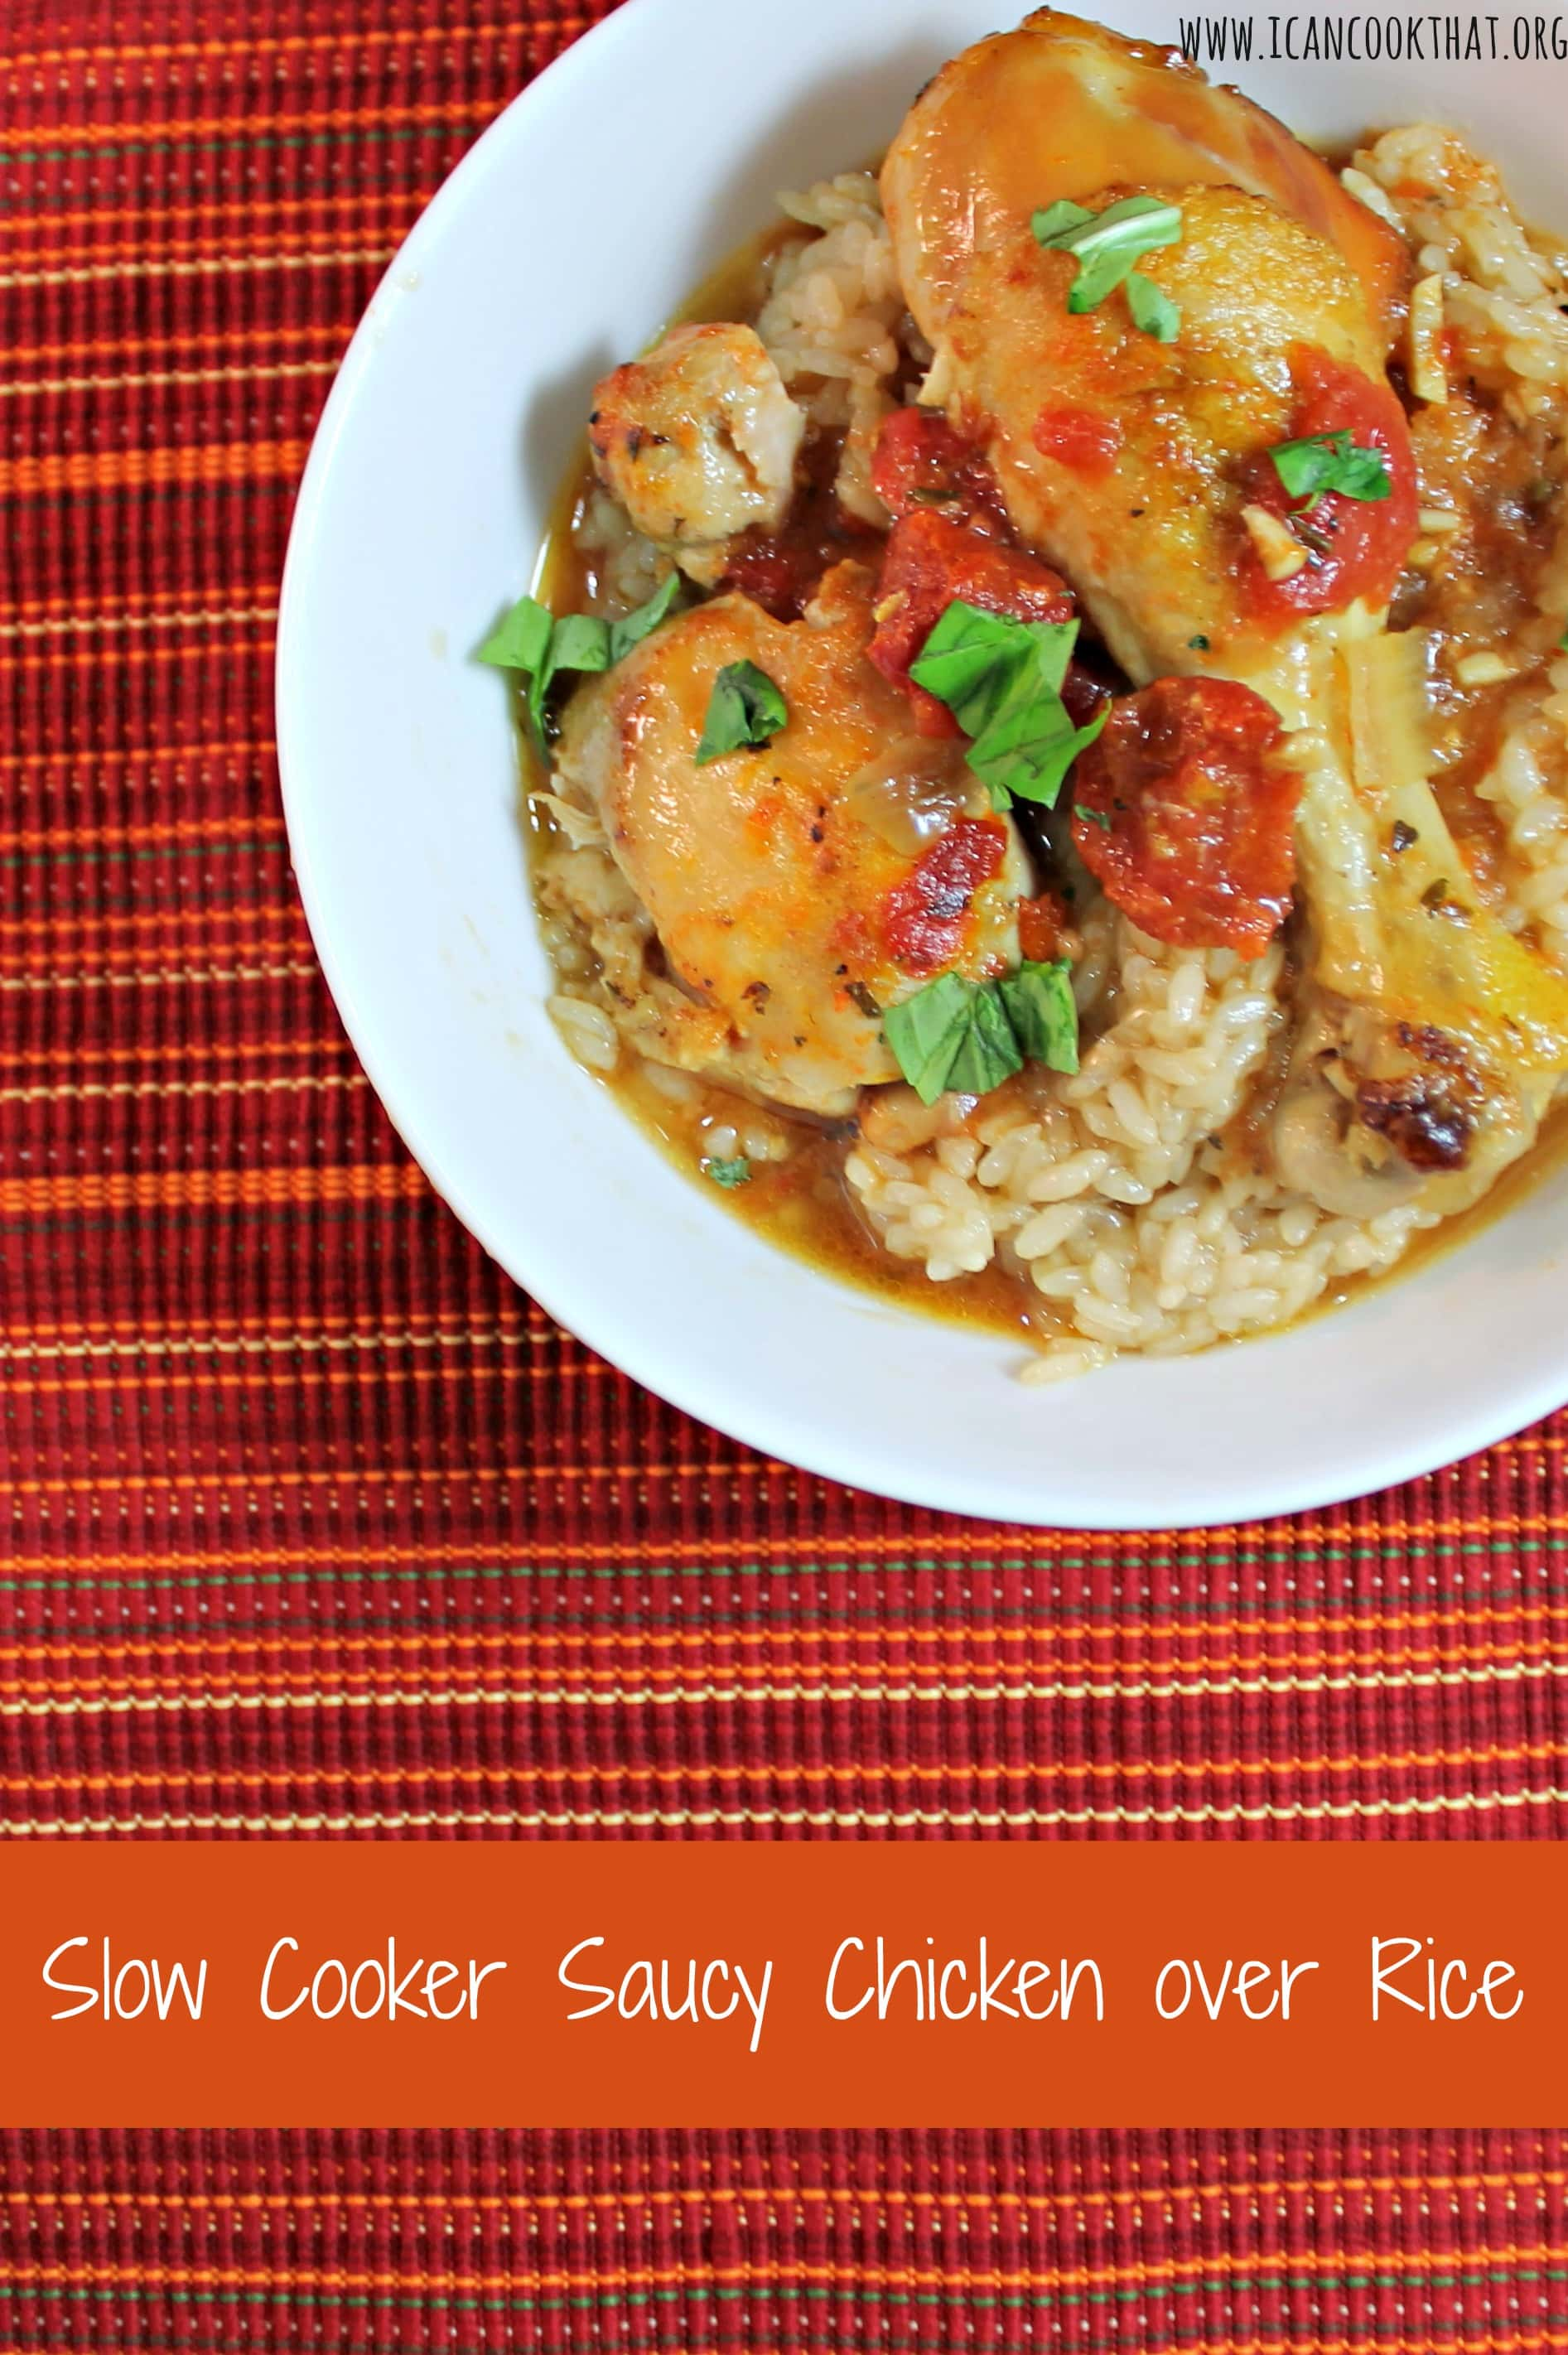 The most delicious, moist, and easy slow cooker chicken yet! Slow Cooker Salsa Chicken requires just a few ingredients: your favorite salsa, some spices, and the chicken! The perfect healthy, gluten-free, paleo weeknight dinner to please everyone! Place the chicken in the bottom of the slow cooker.